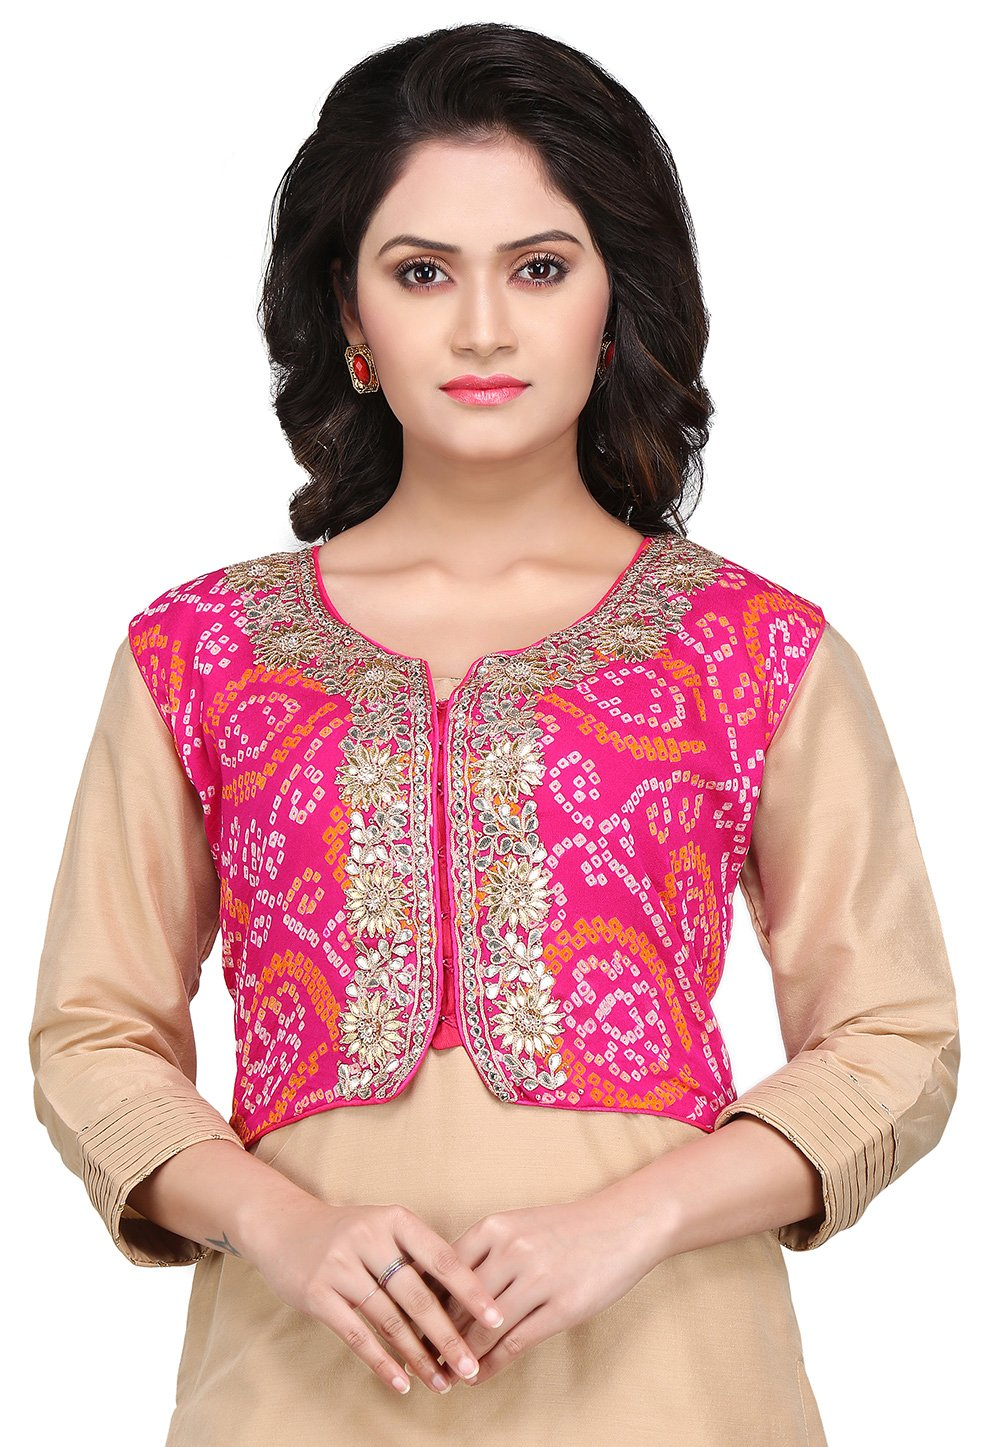 Utsav Fashion Pure Chinon Crepe Bandhej Jacket in Fuchsia by Utsav Fashion